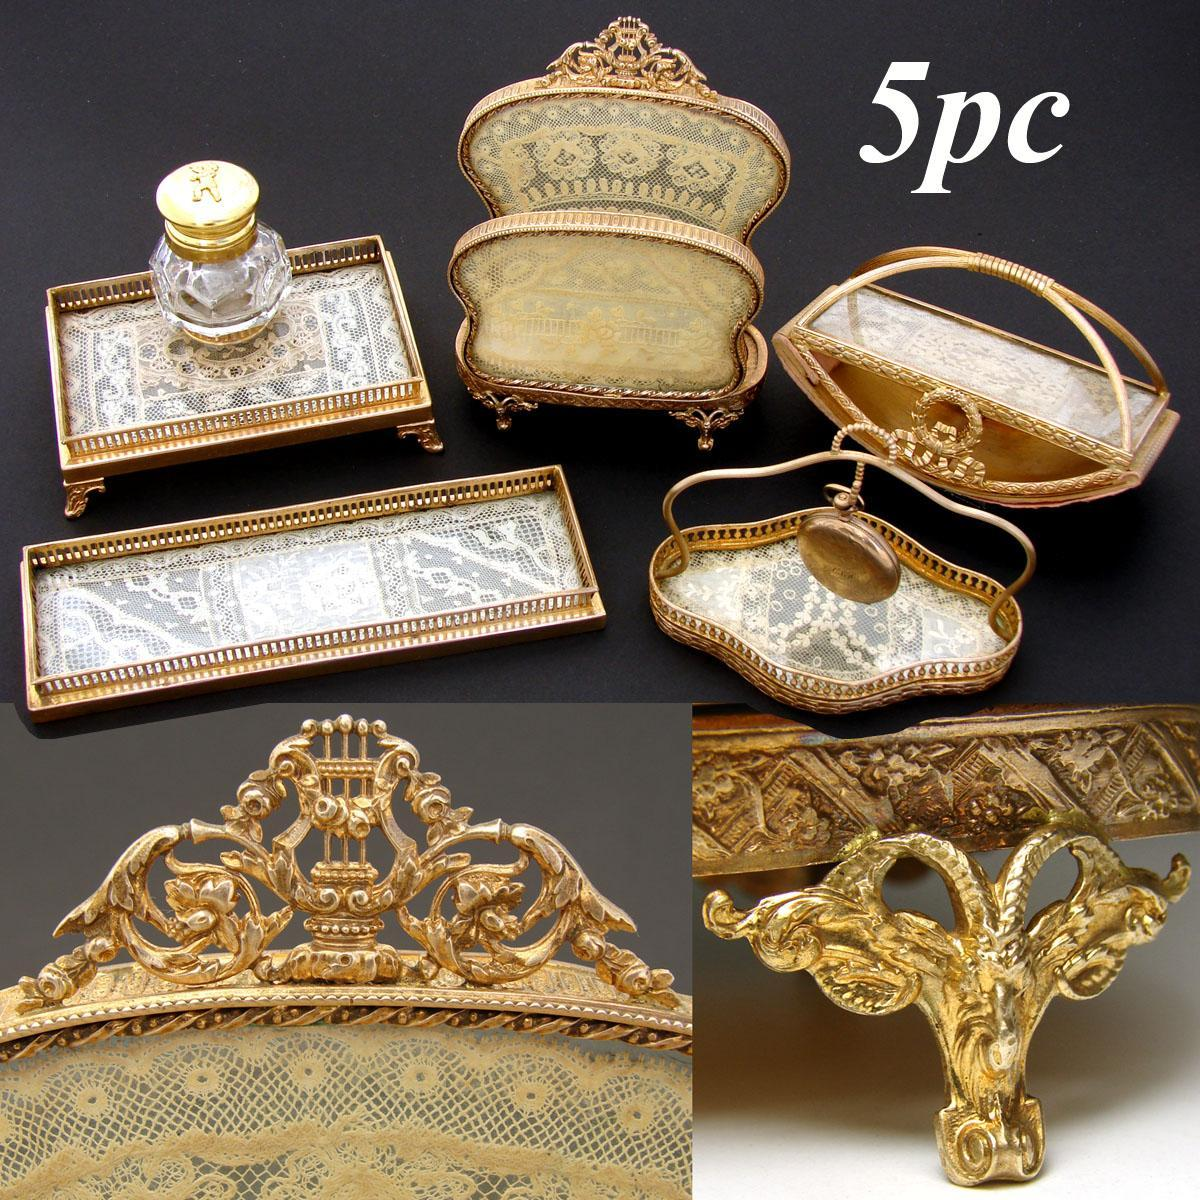 Lovely Vintage French Empire Style 5pc Desk Set Inkwell Stationery Stand Lace Gilt Ormolu